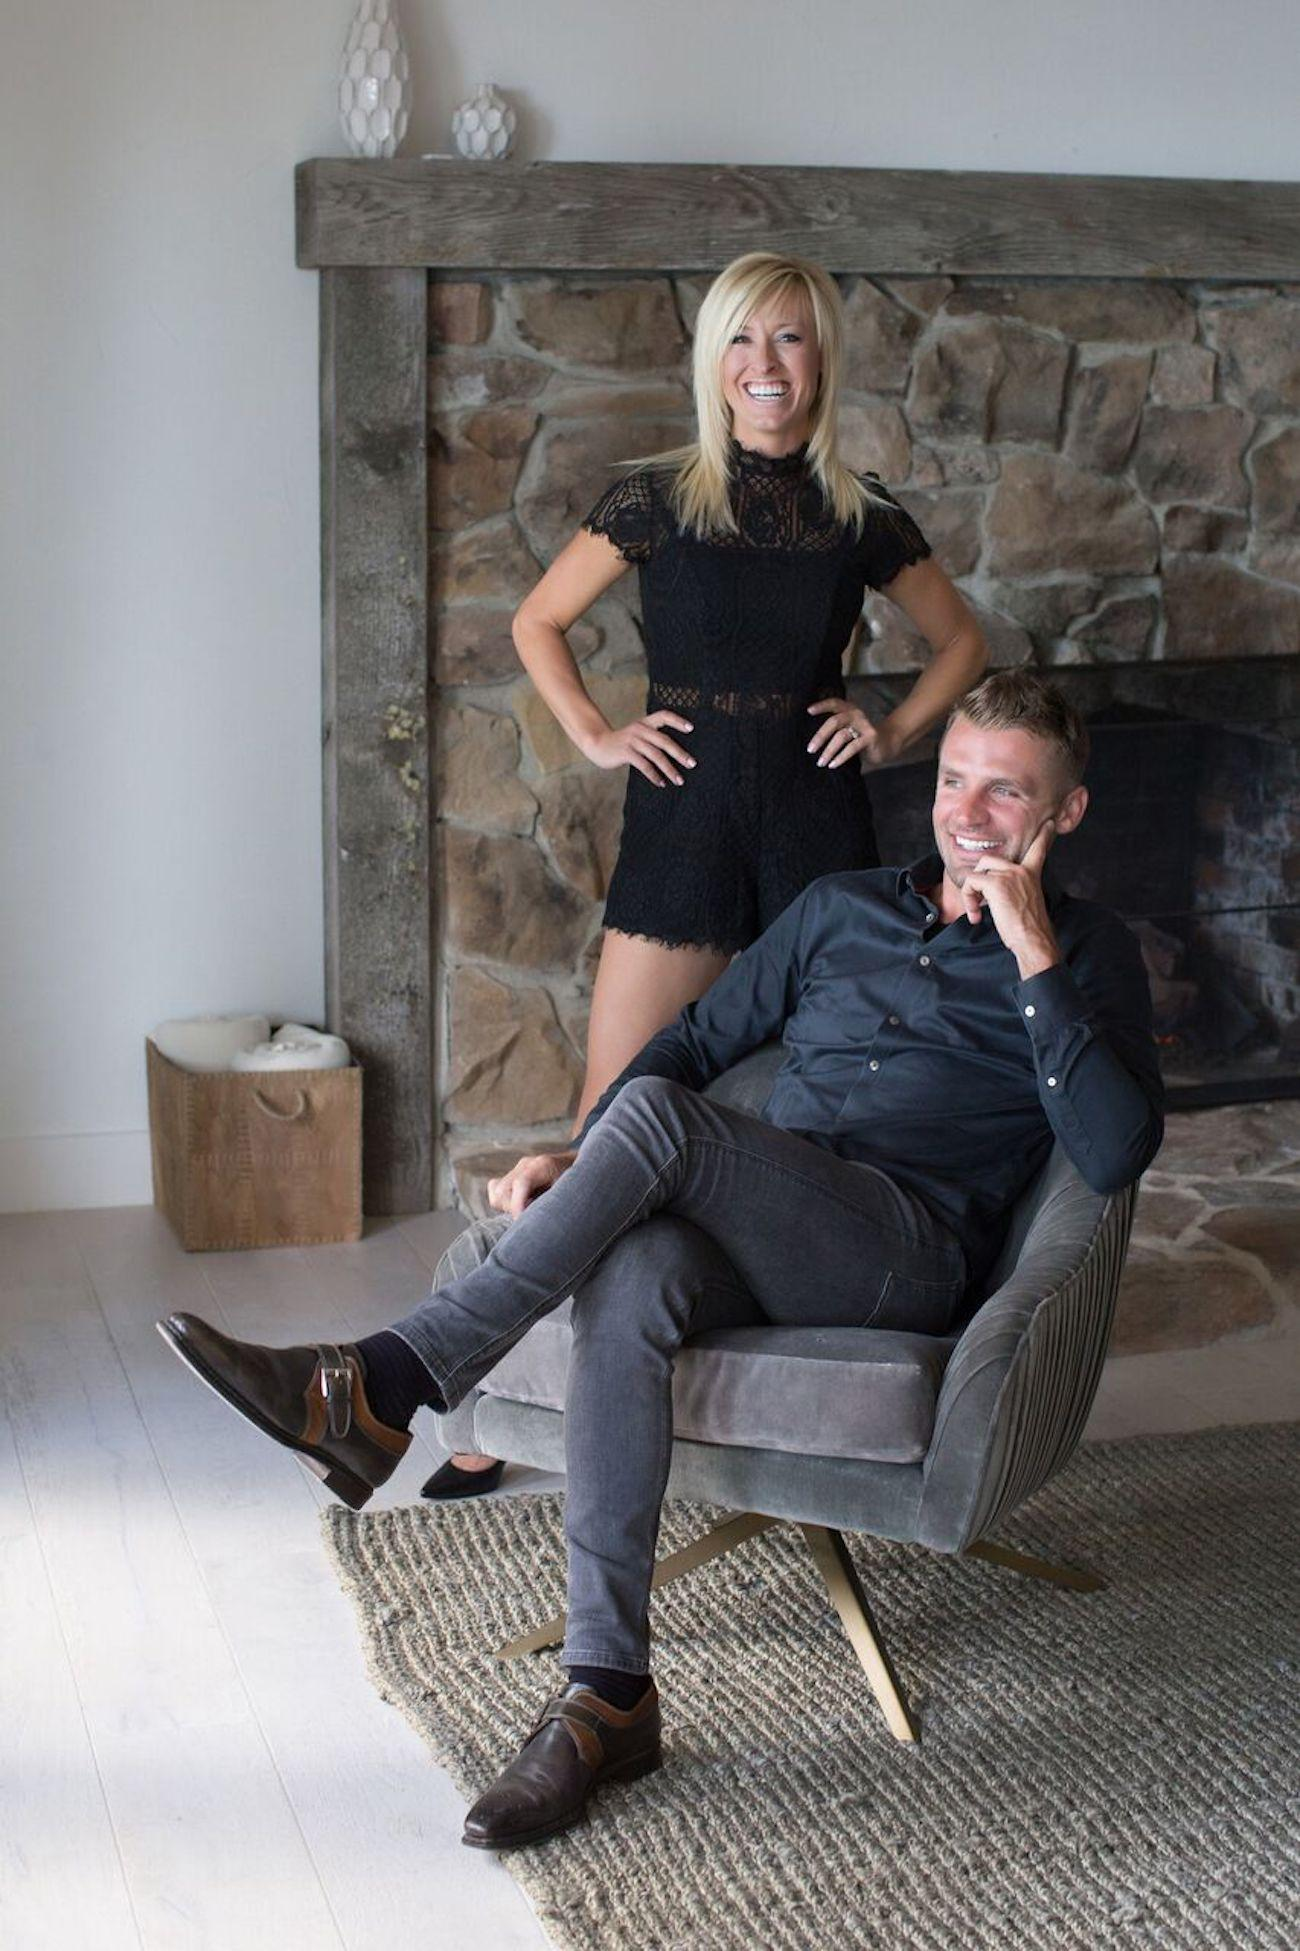 Angela Allison serves as CEO, while her husband, Austin, is co-founder and chairman. / Image: Lucid Linds (Instagram: @girlbrandpgotography) via WineSociety // Published: 8.5.18